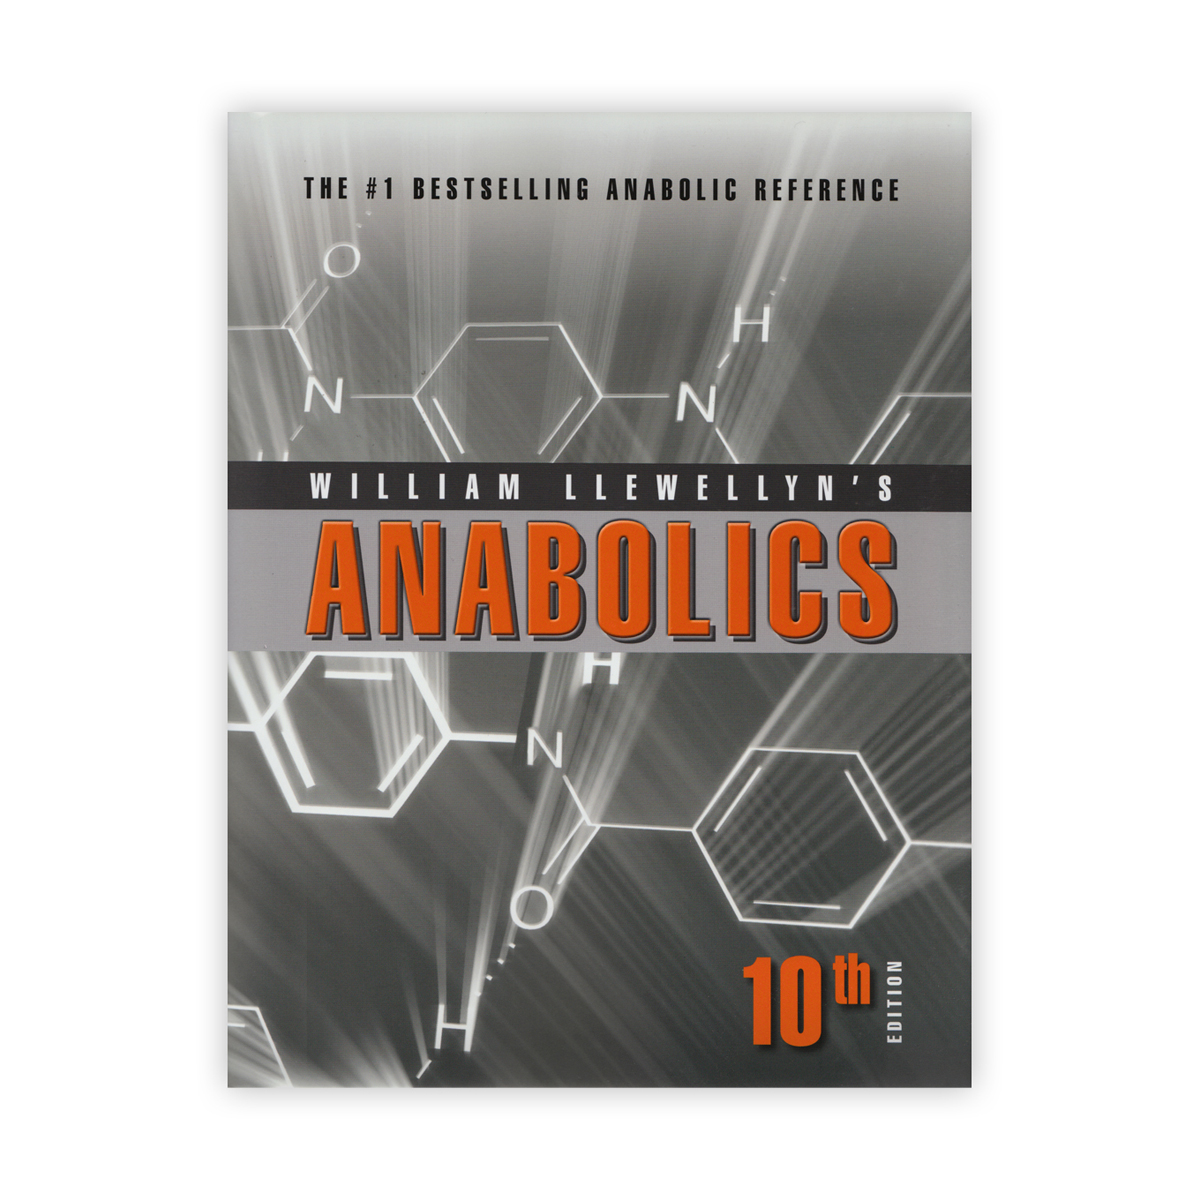 Anabolics 10th Edition by William Llewellyn (Hardcover)(Temp Out of Stock)